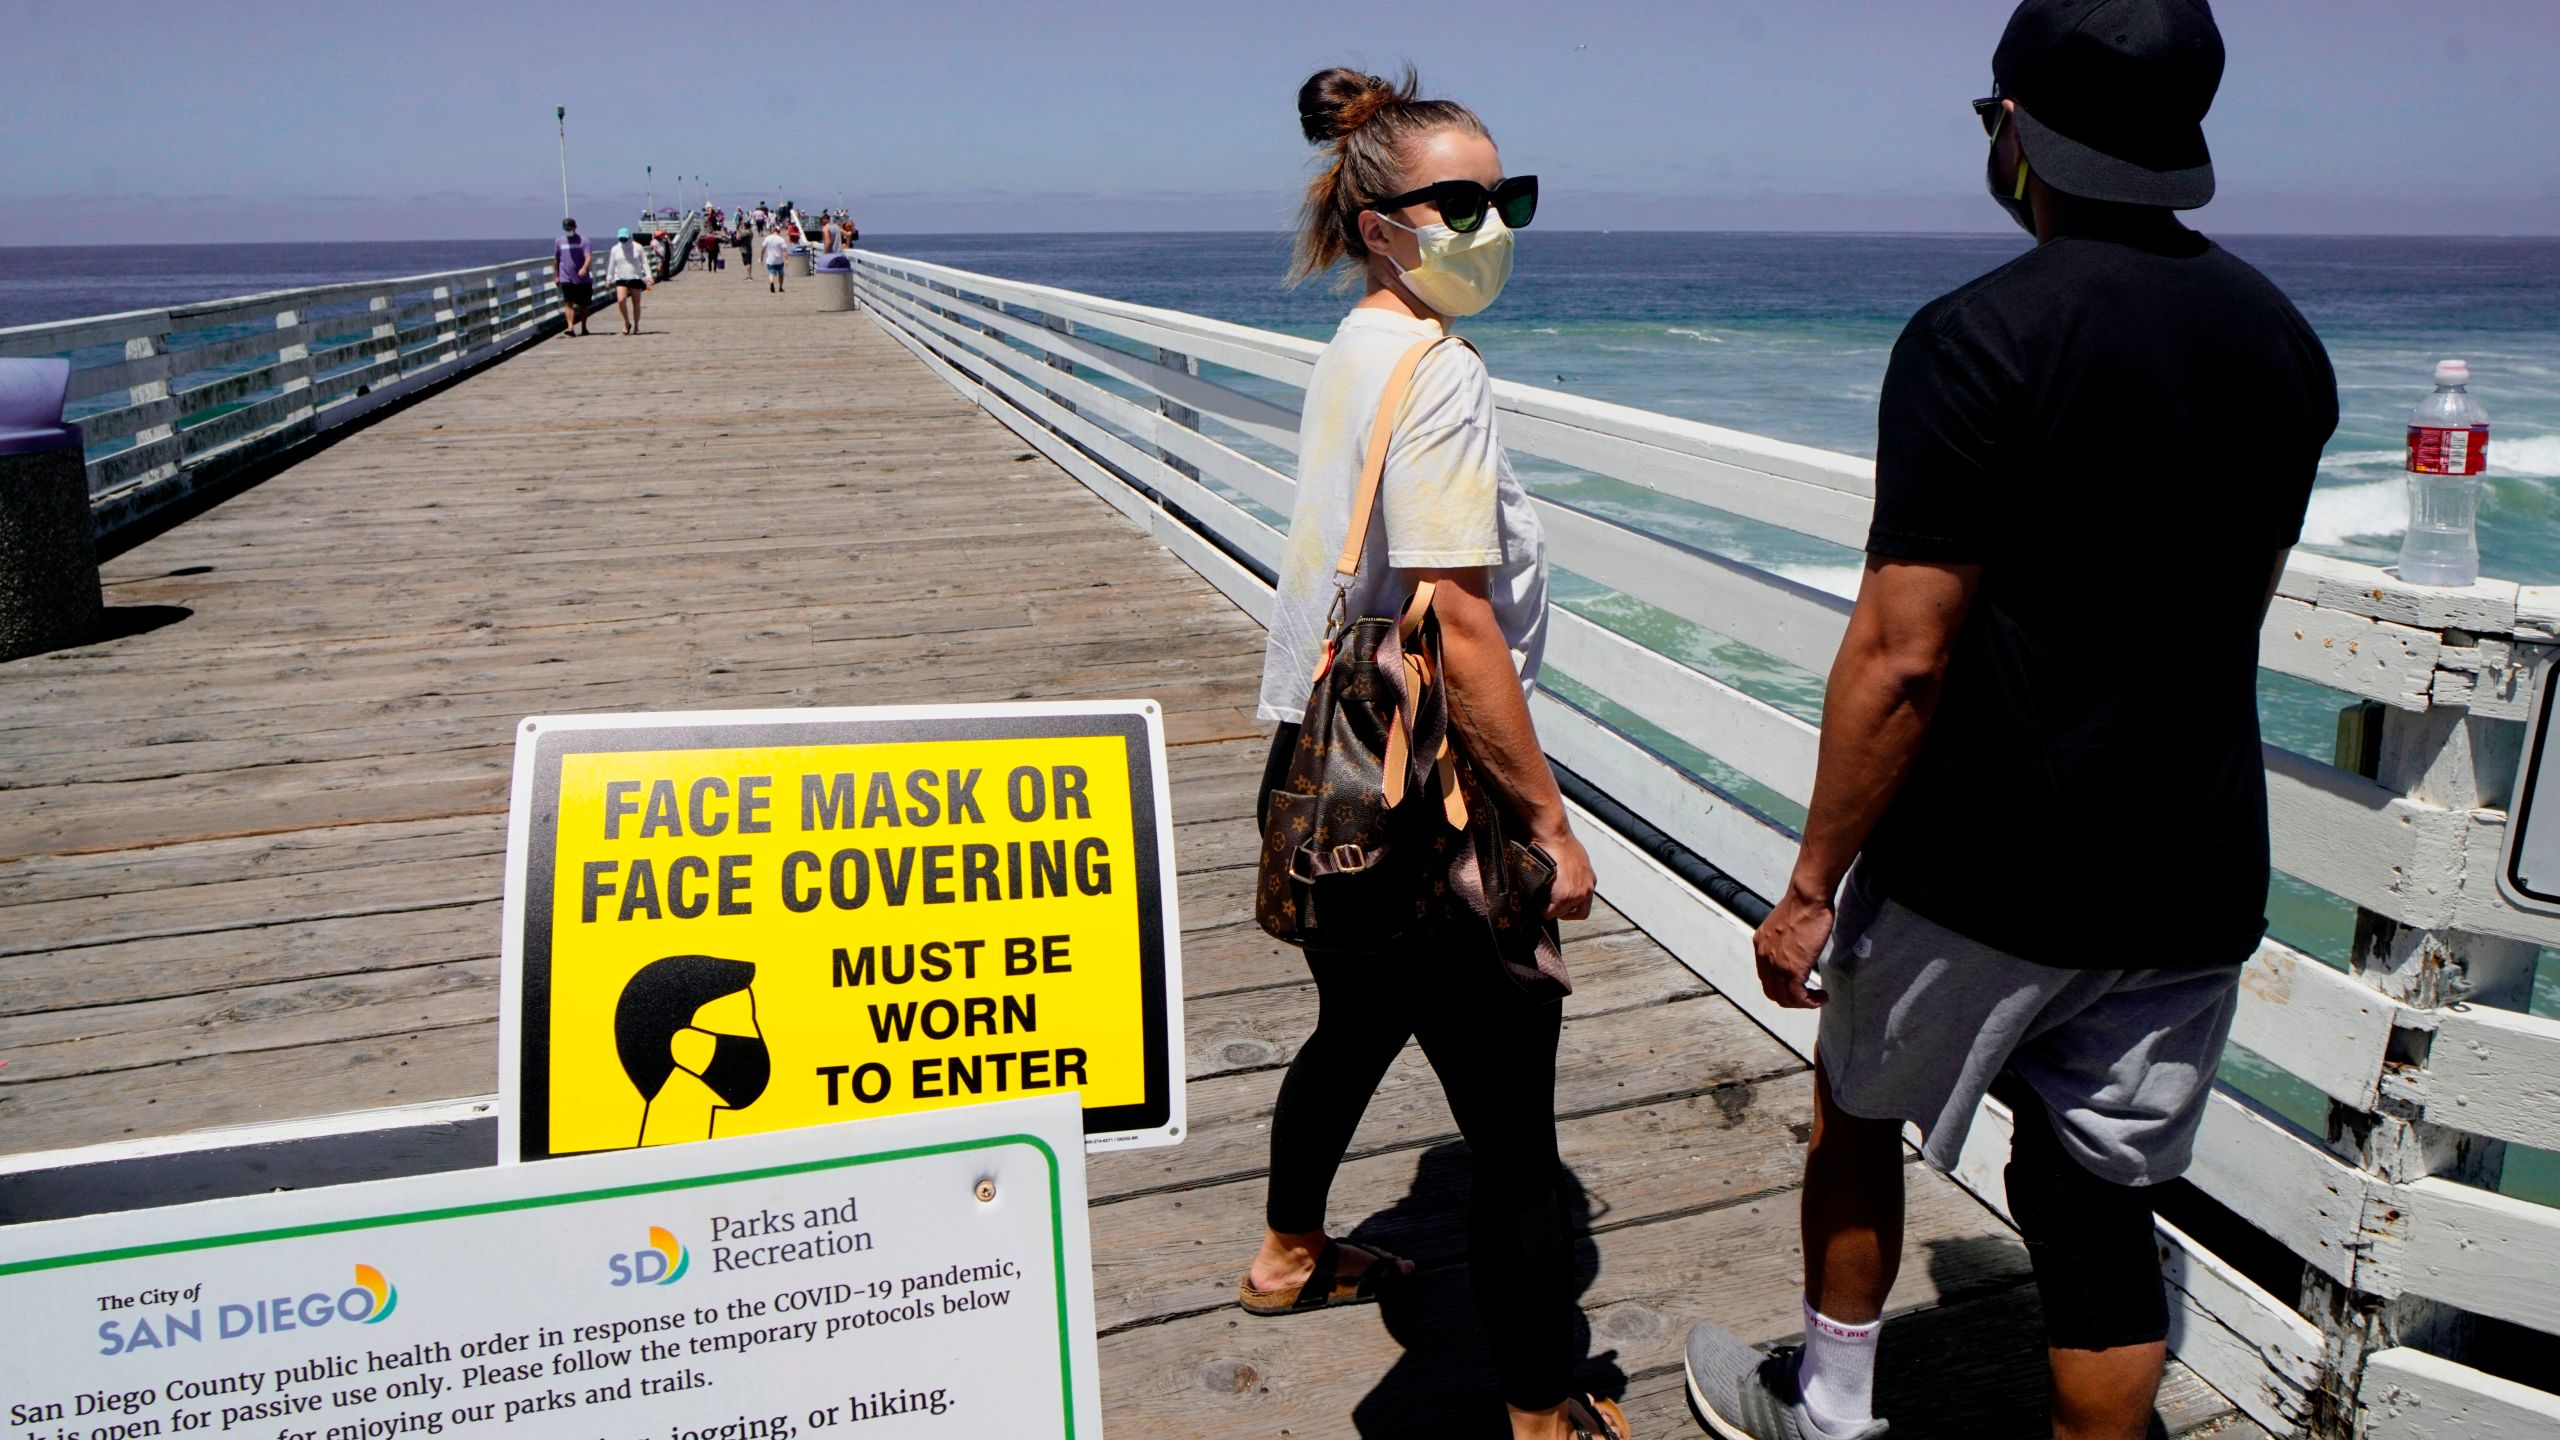 Beachgoers walk out onto the Pacific Beach Pier in San Diego on Saturday, July 4, 2020, amid the coronavirus pandemic. (SANDY HUFFAKER/AFP via Getty Images)